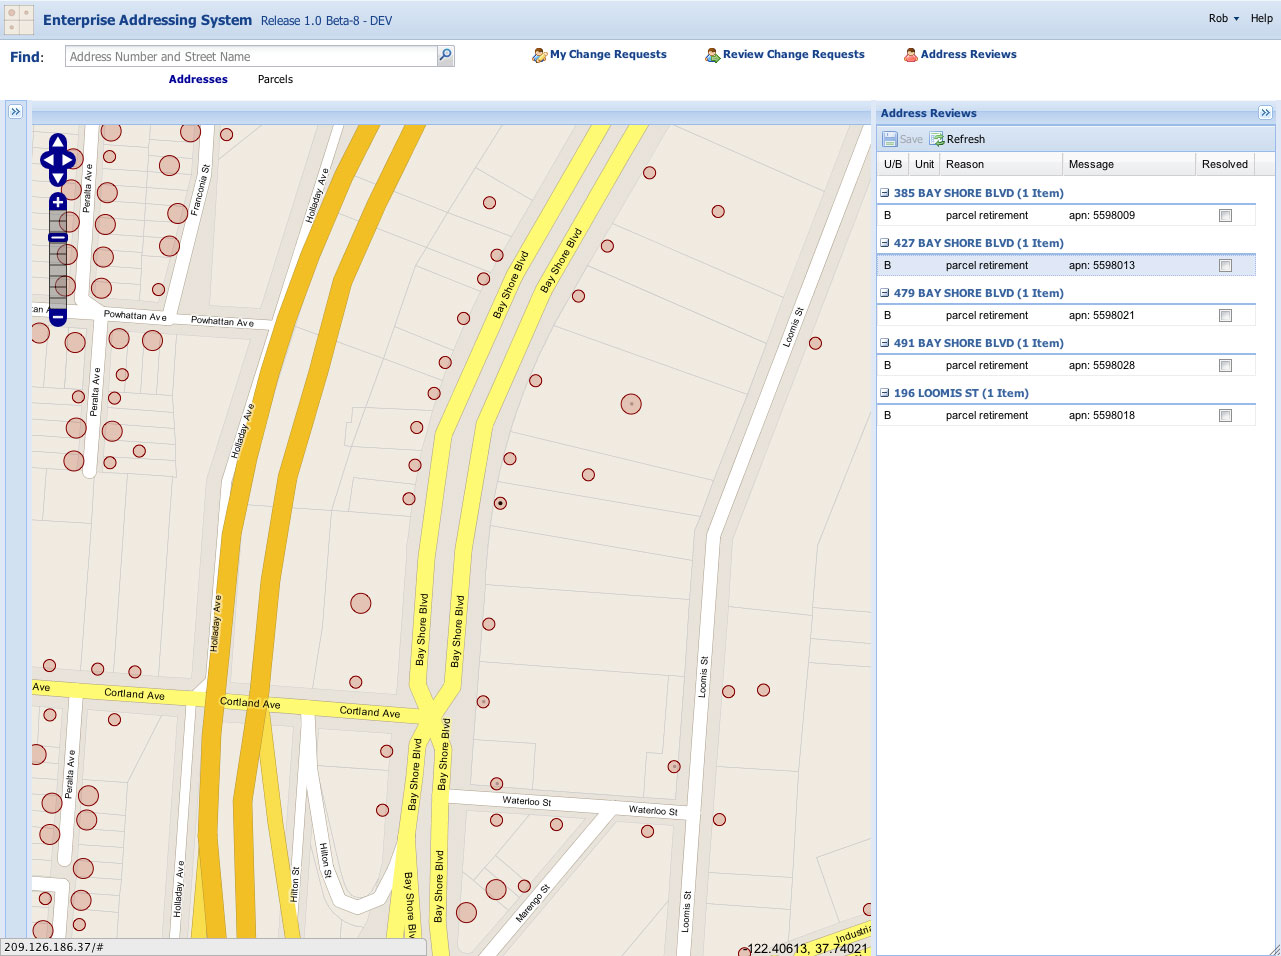 The EAS system automatically flags address data in need of attention when related City data (such as parcel data) are updated. Users can then see a list of these address from the web application and apply the proper edits to correct any issues.